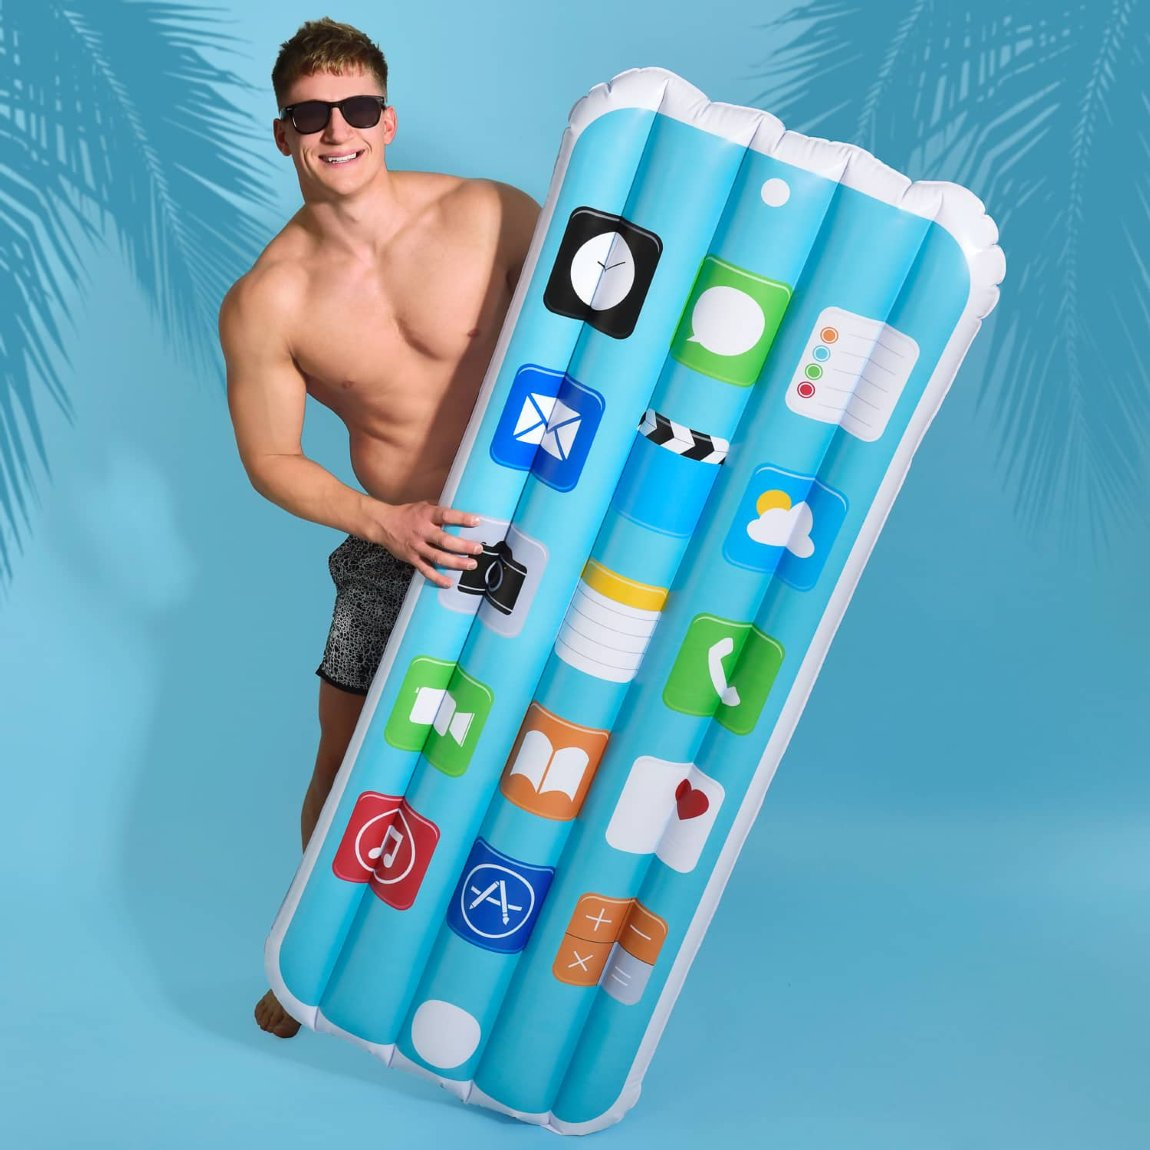 Deluxe Pool Inflatable - Phone